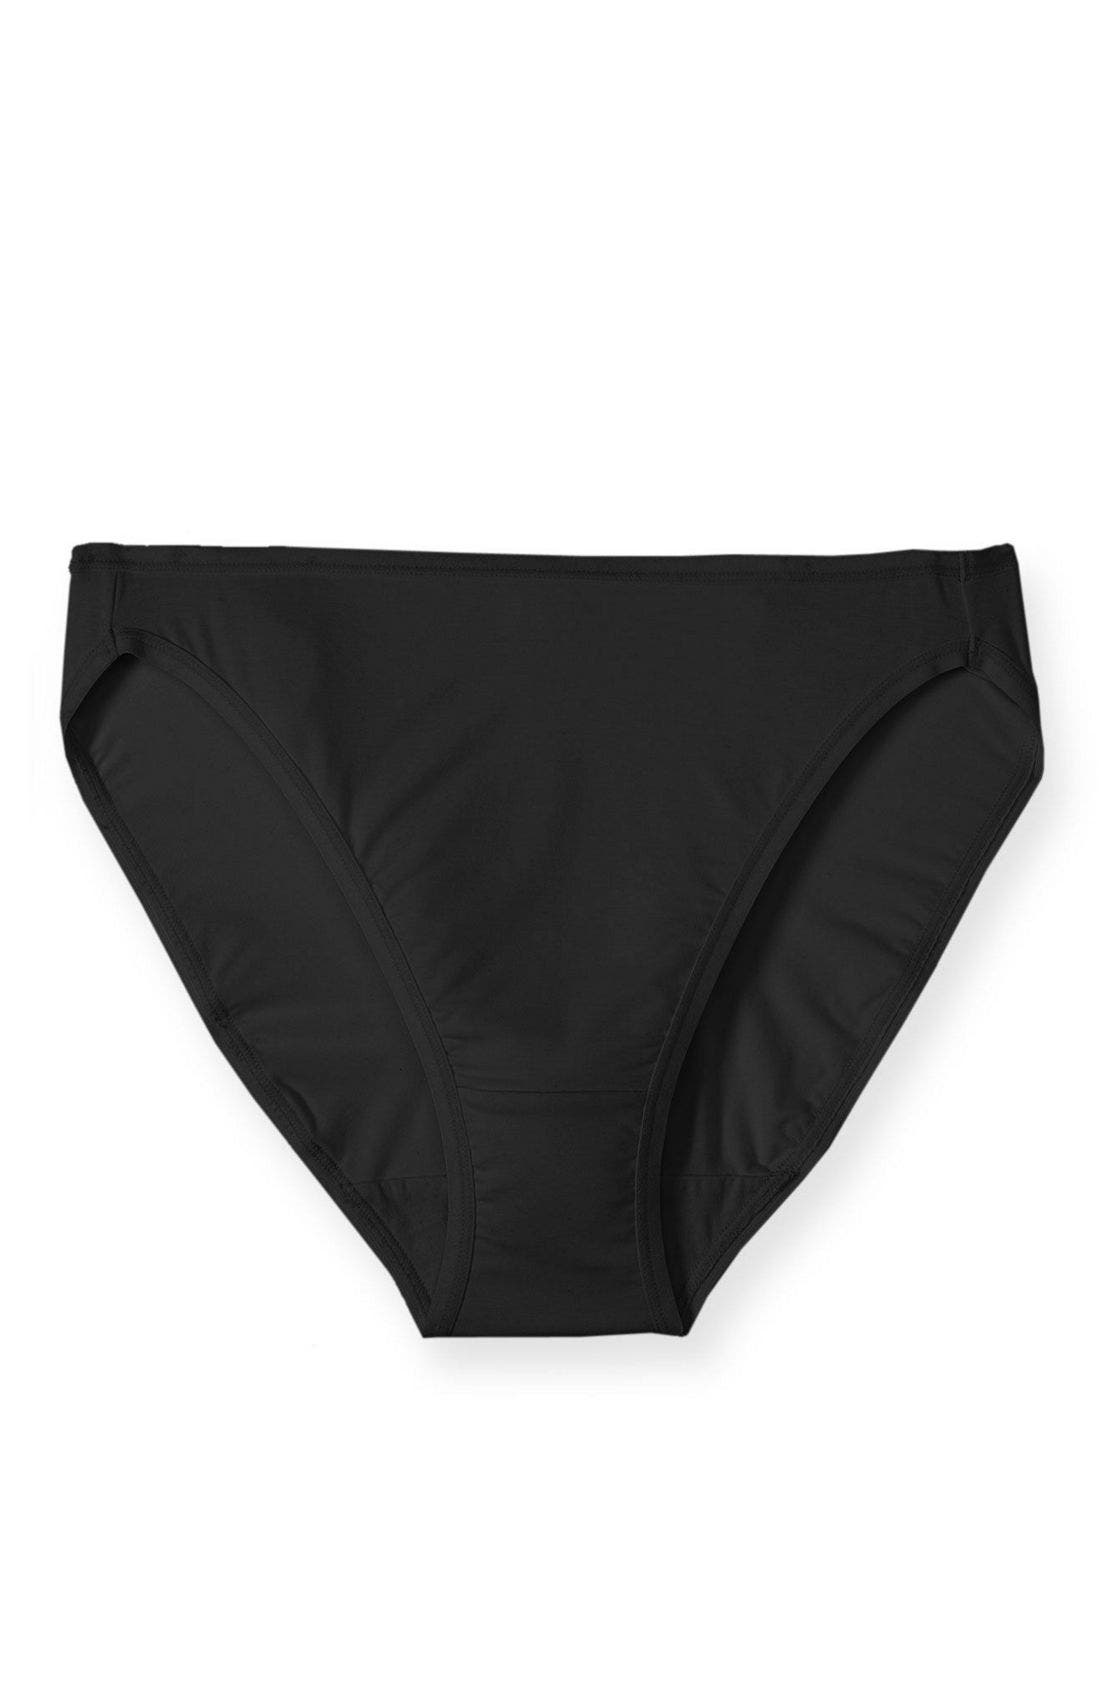 'Sublime' High Cut Briefs,                             Alternate thumbnail 2, color,                             BLACK